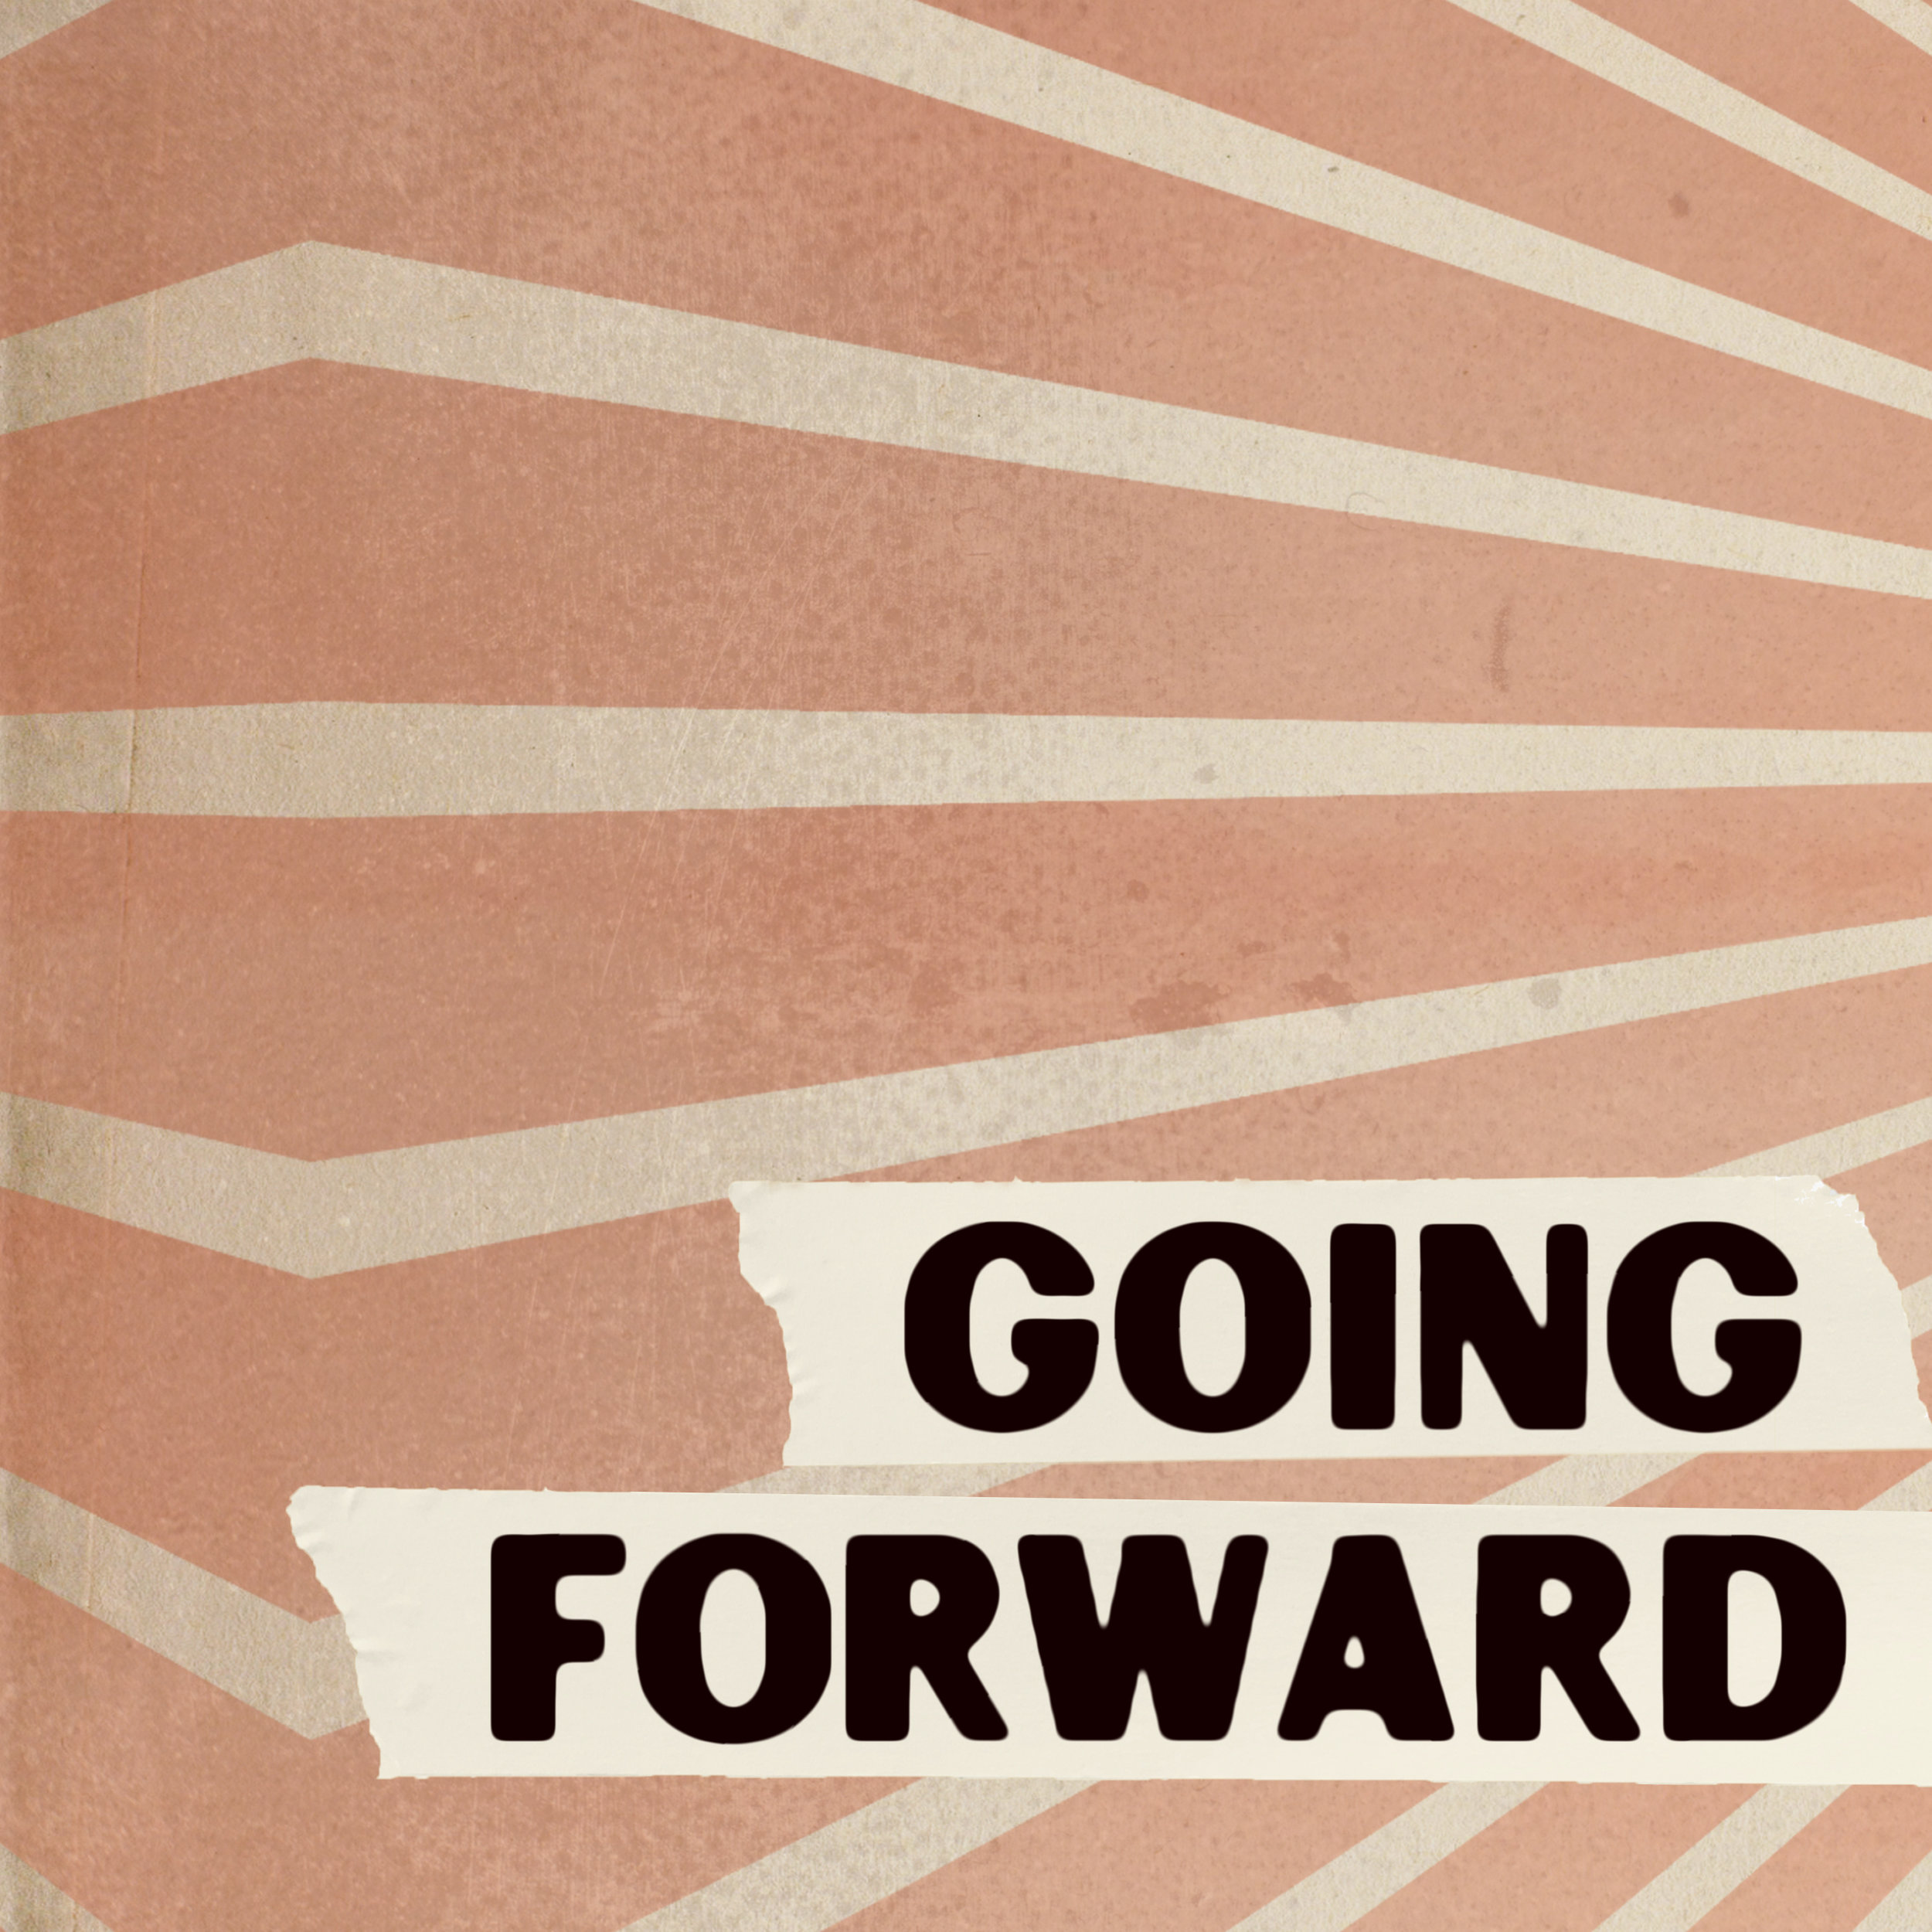 Going Forward logo.